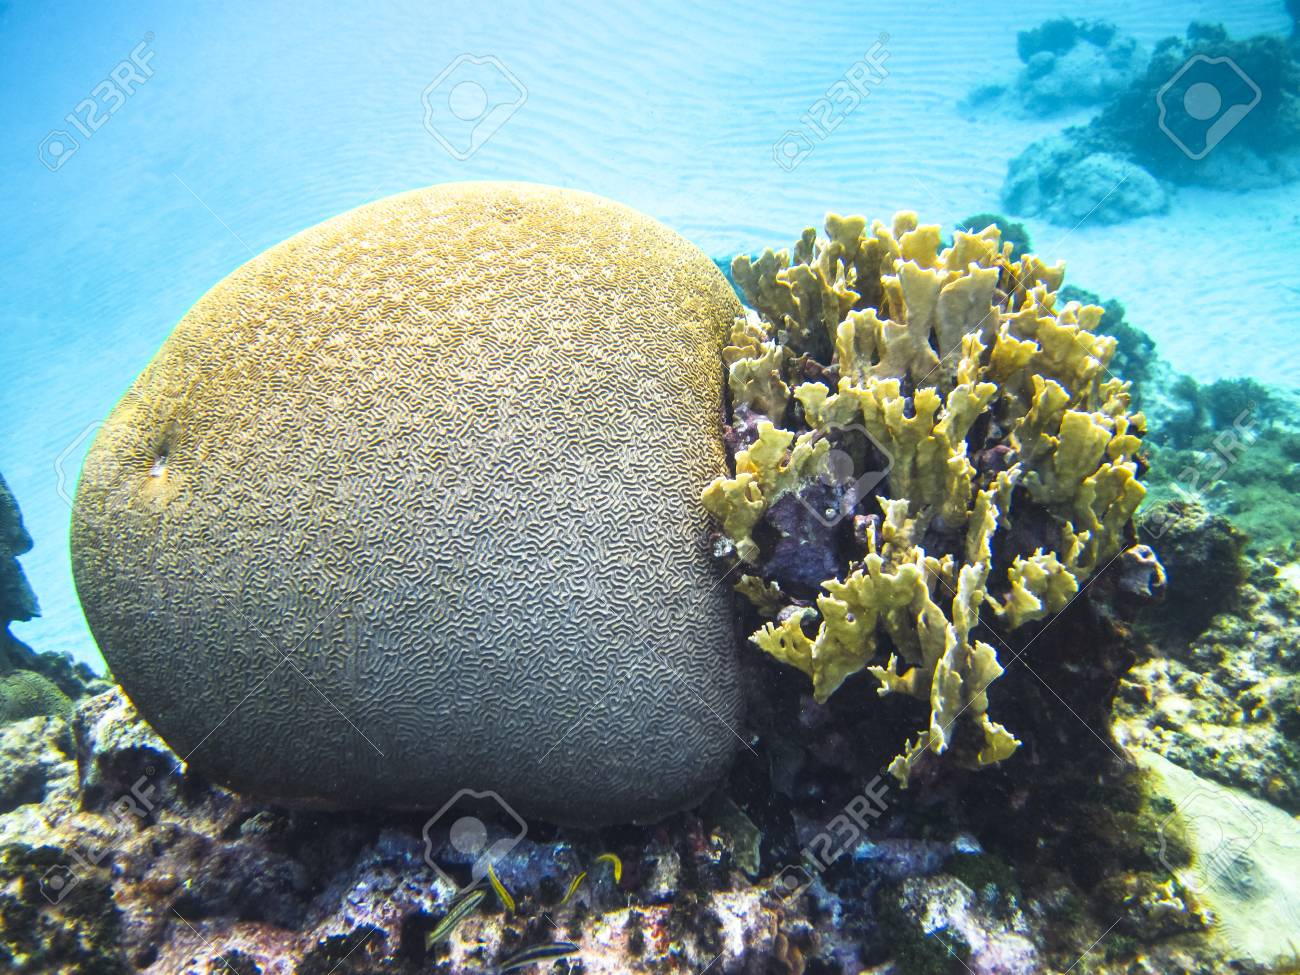 Different types of coral including brain coral family mussidae different types of coral including brain coral family mussidae or merulinidae in the publicscrutiny Images